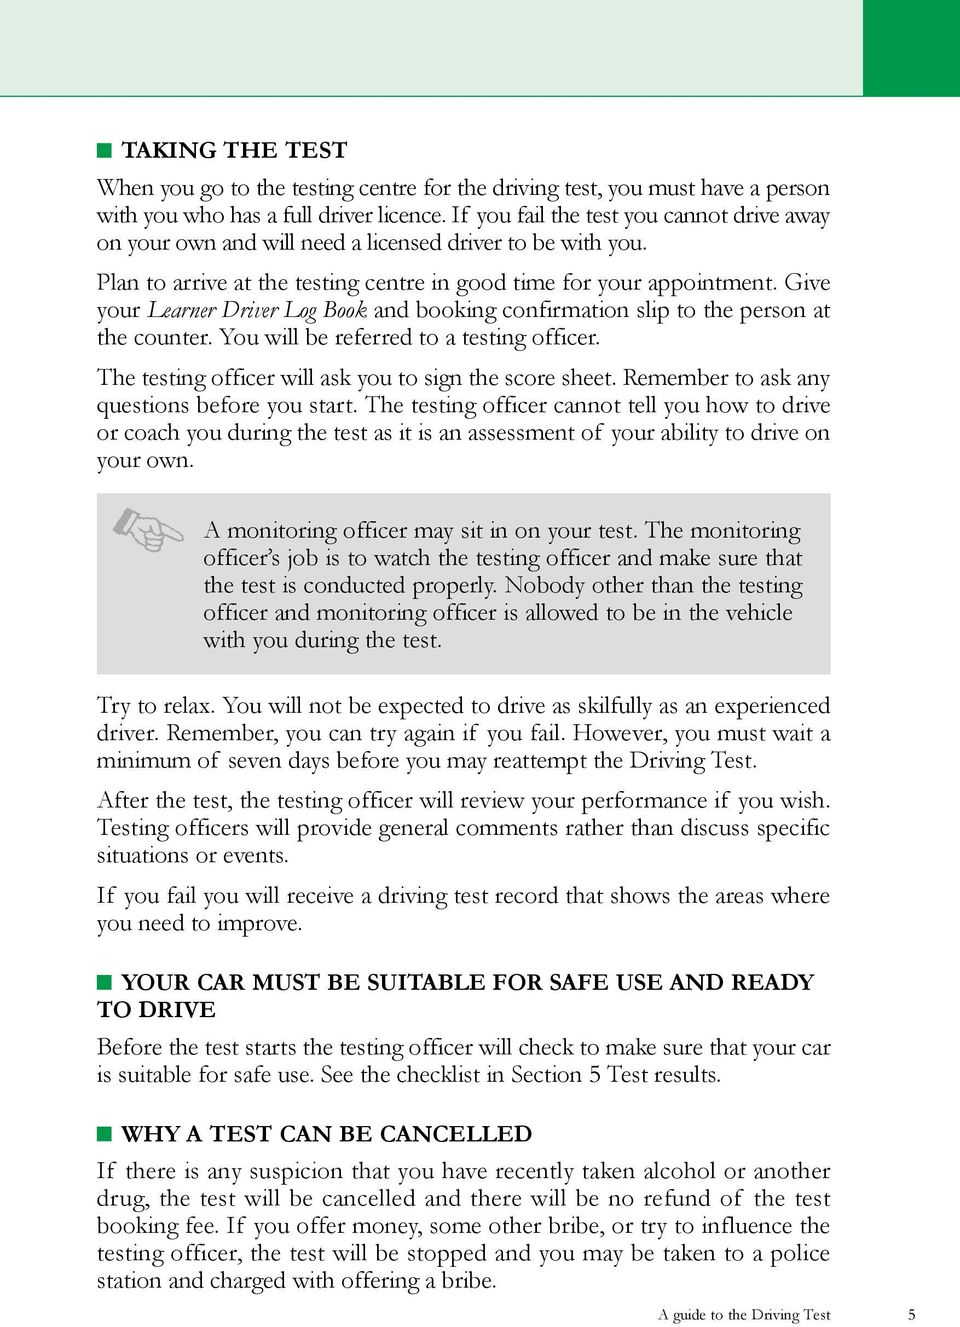 Give your Learner Driver Log Book and booking confirmation slip to the person at the counter. You will be referred to a testing officer. The testing officer will ask you to sign the score sheet.